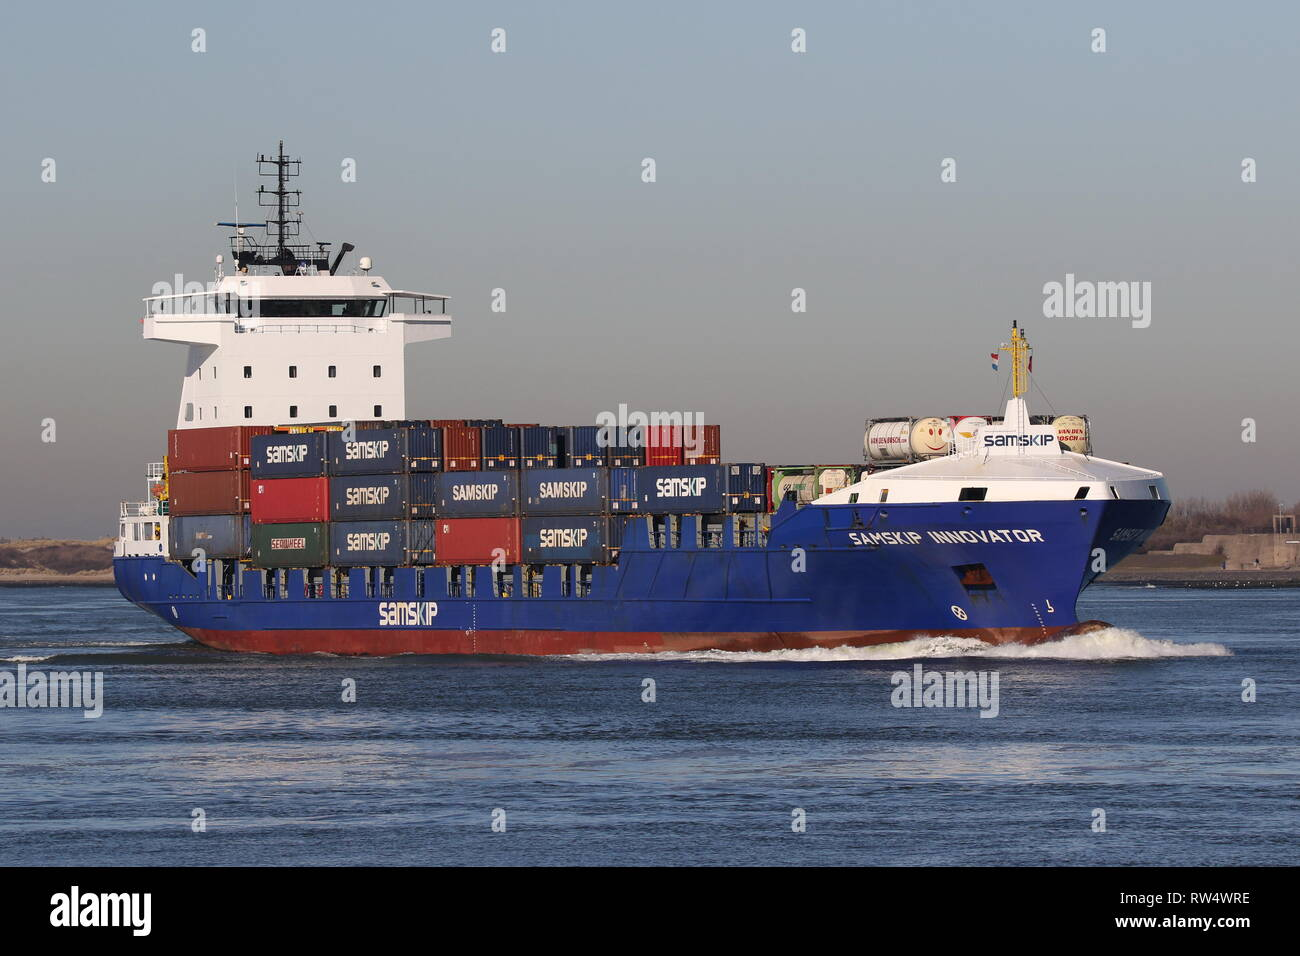 The container ship Samskip Innovator reaches the port of